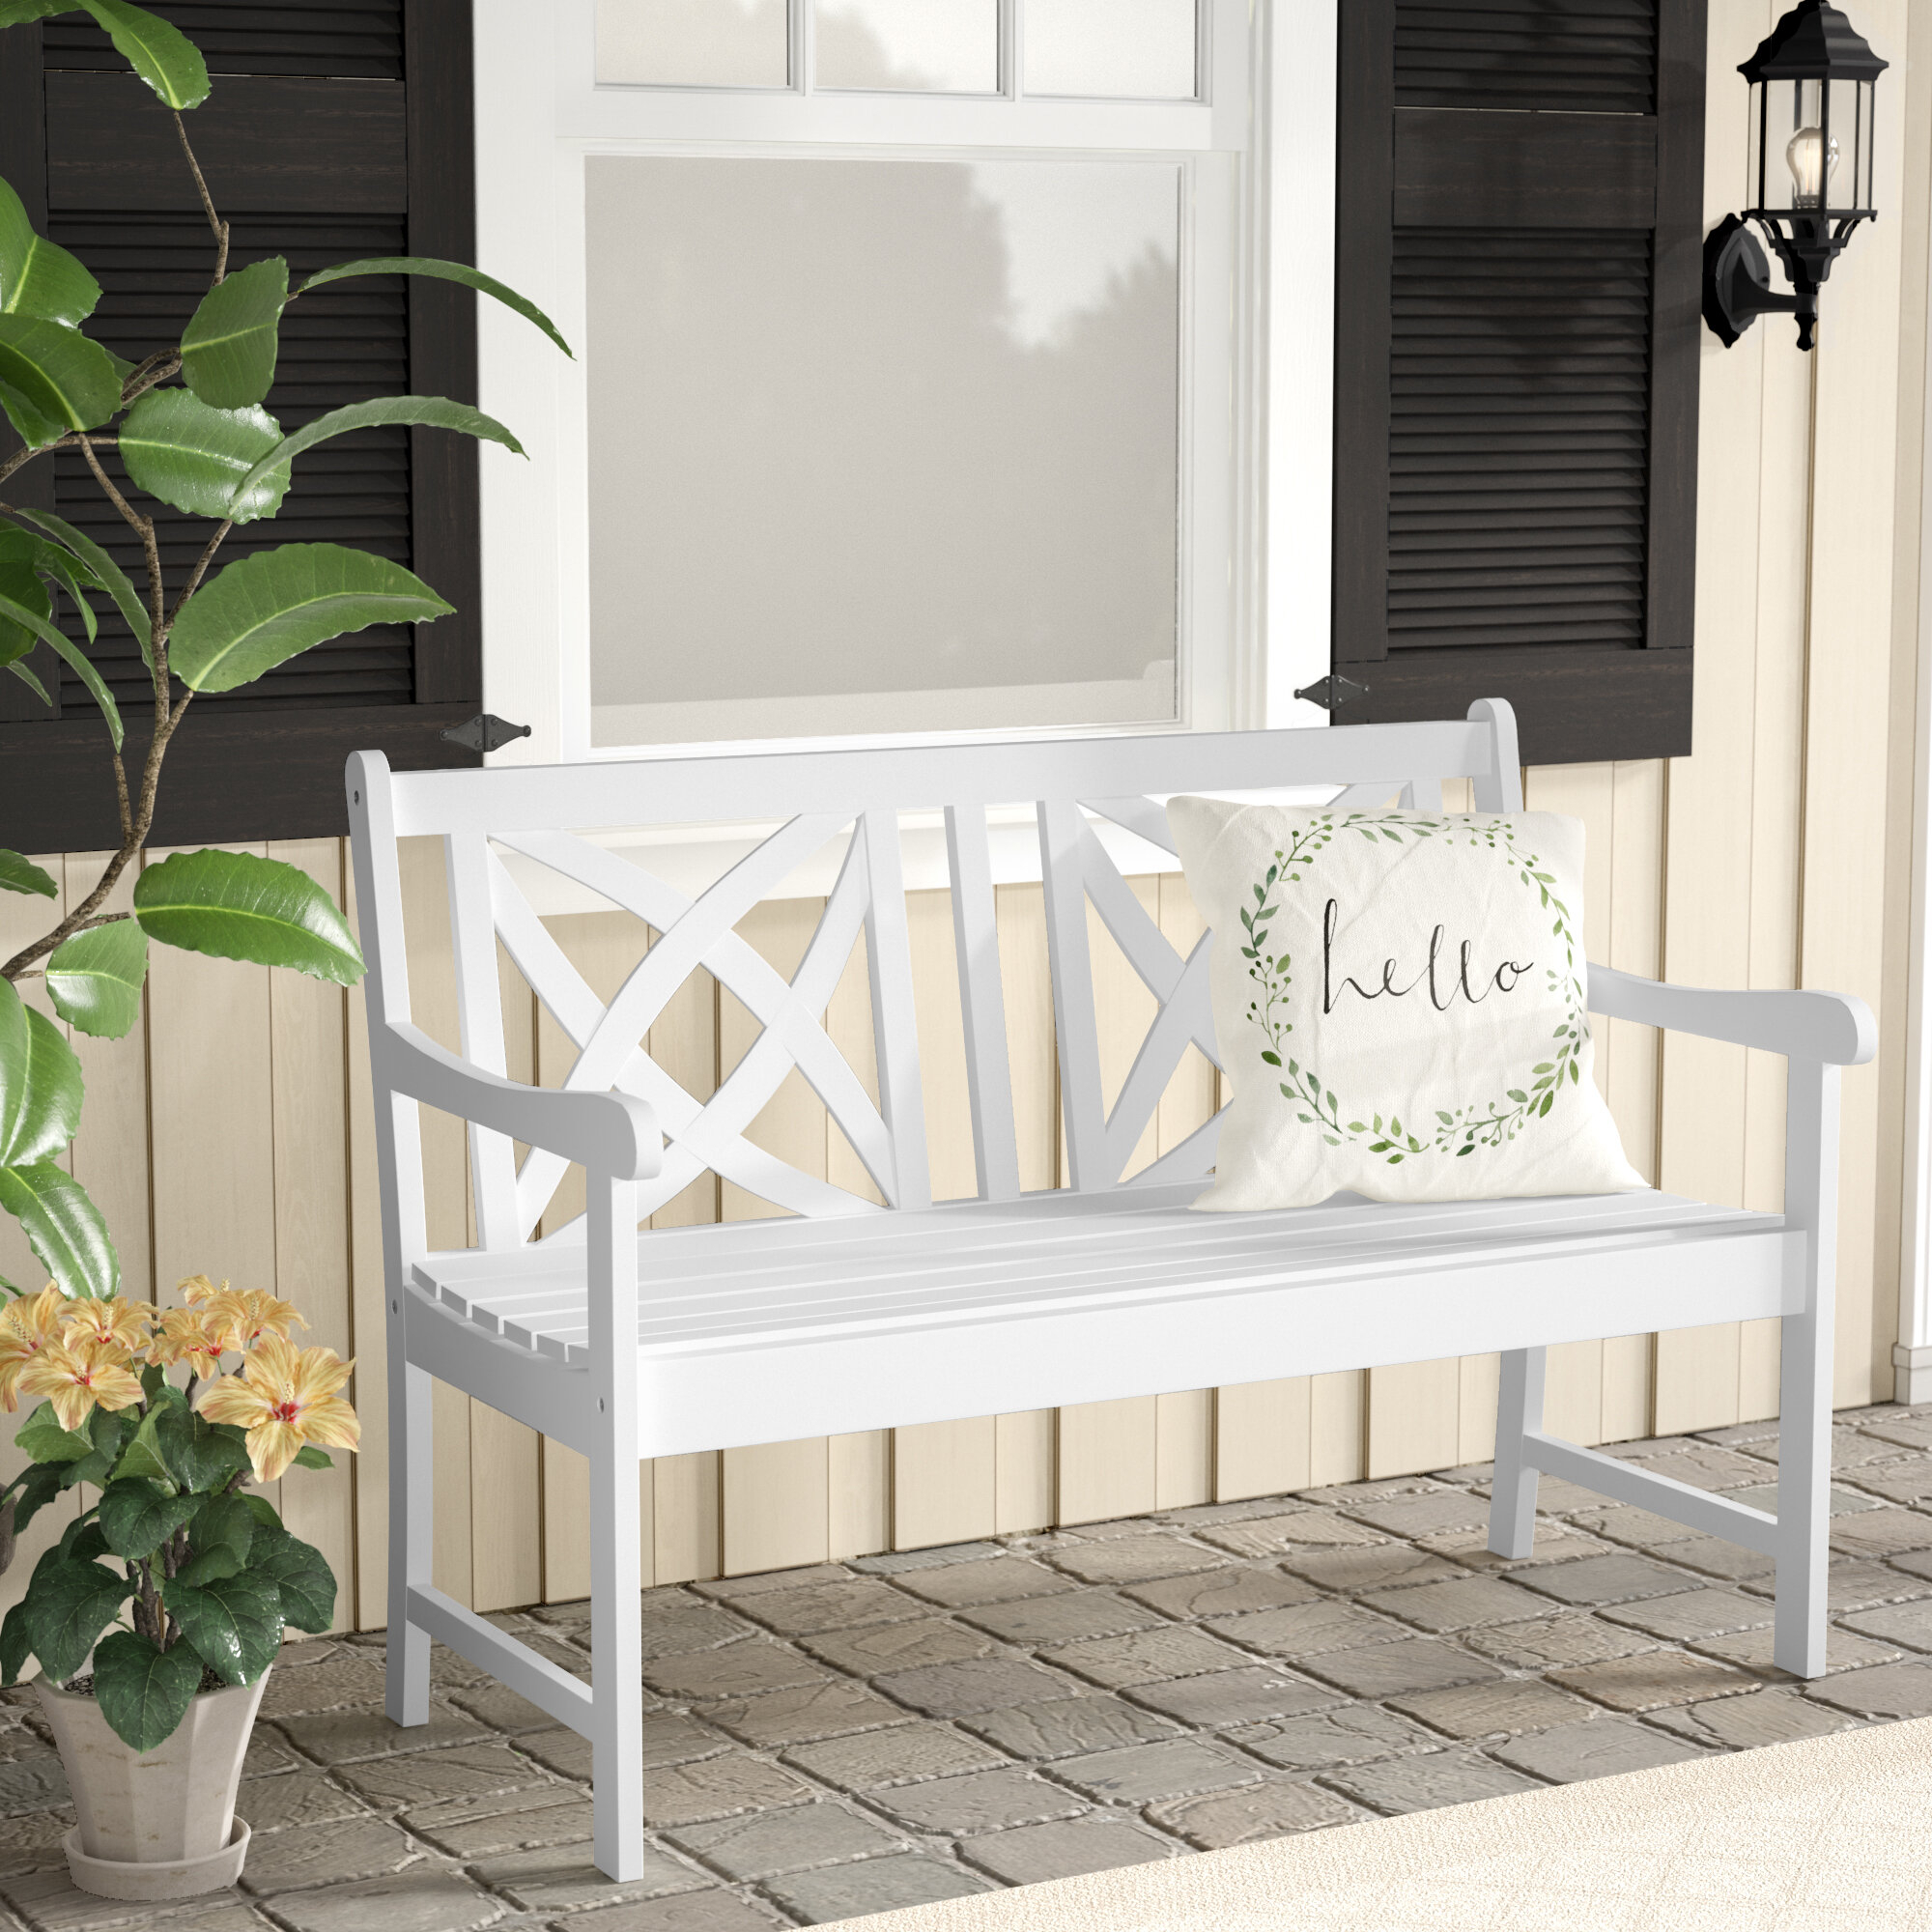 Delavan Wooden Garden Bench With Regard To Ahana Wooden Garden Benches (View 7 of 25)